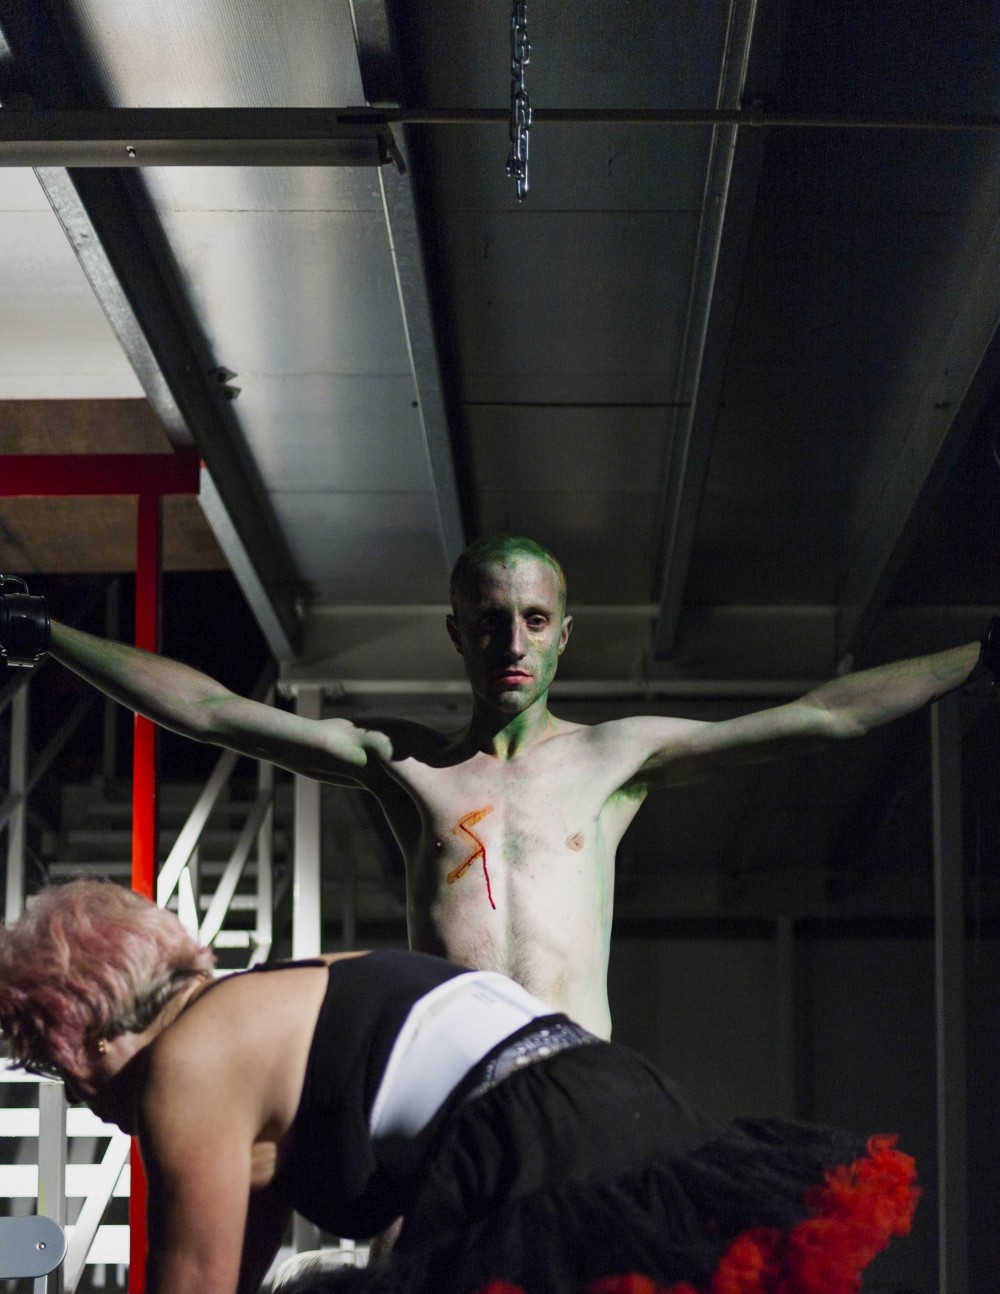 A man stands with green paint on his head and his arms stretched out. In front of him their is woman wearing a tutu, she is bent over.